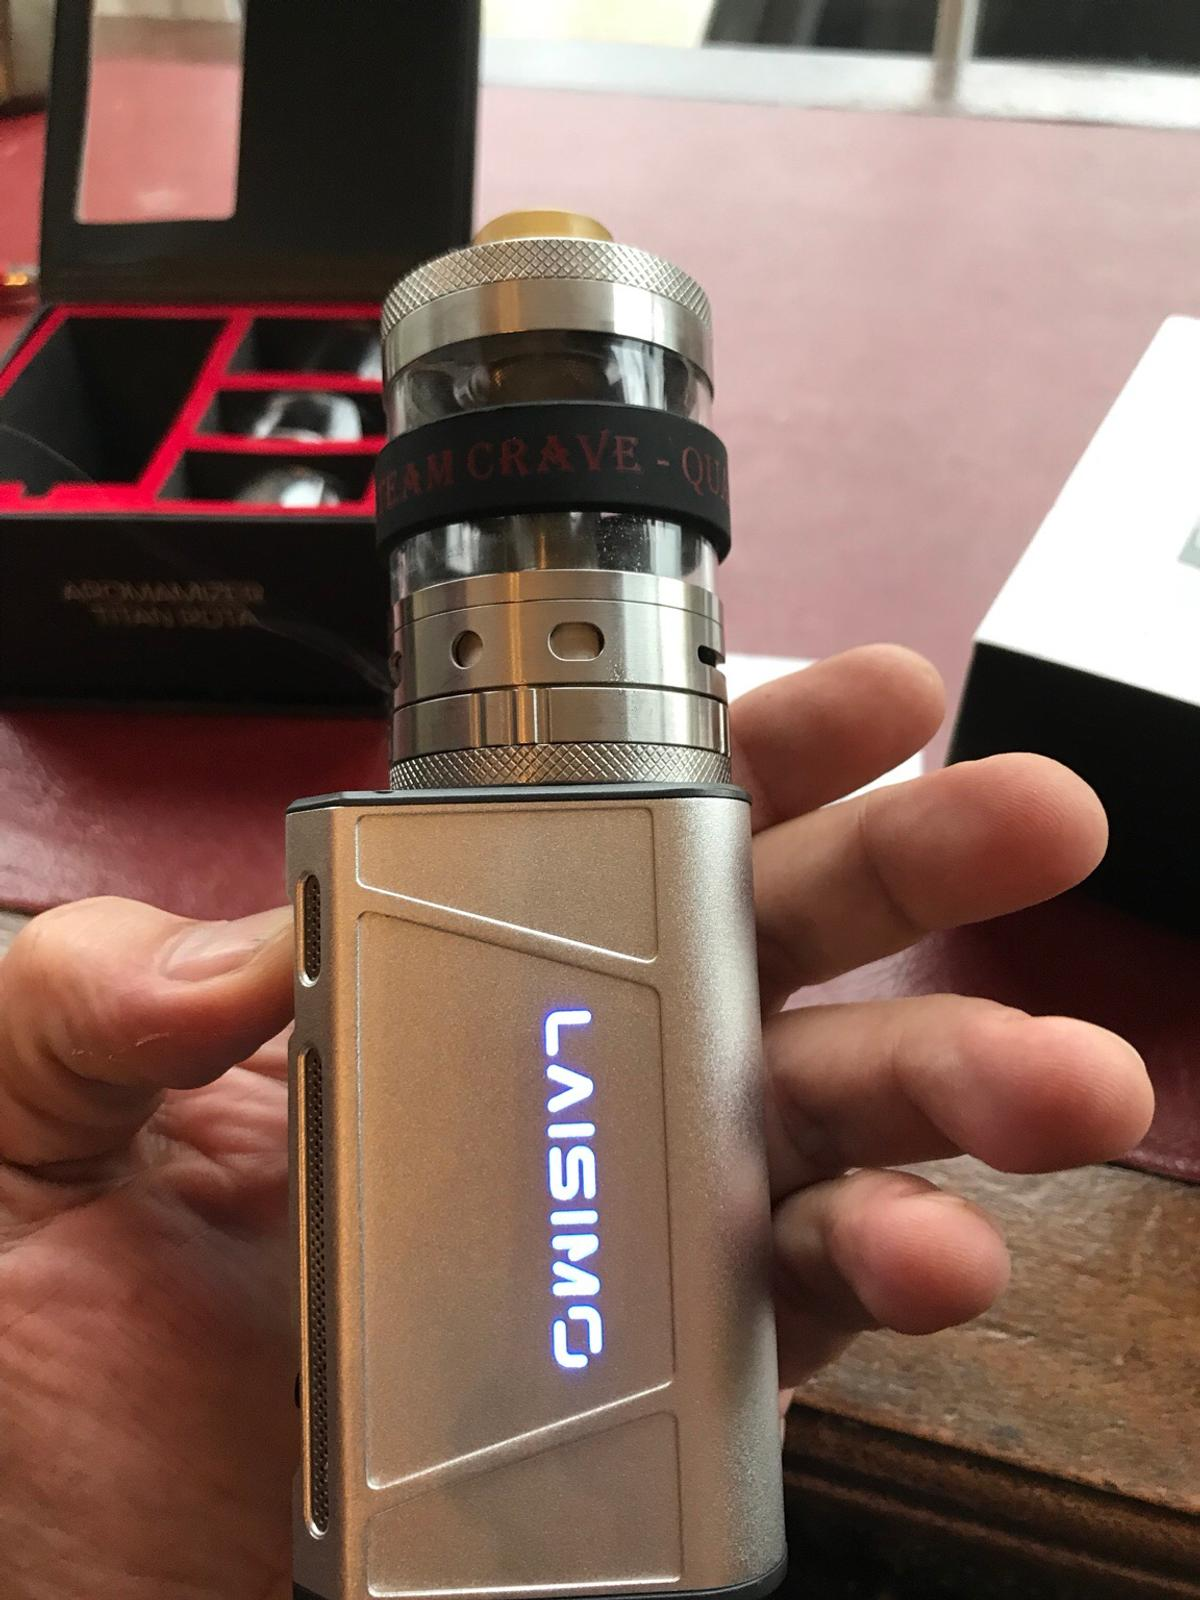 Steam Crave Titan RDTA, Laisimo F4 vape mod in CH42 Wirral for